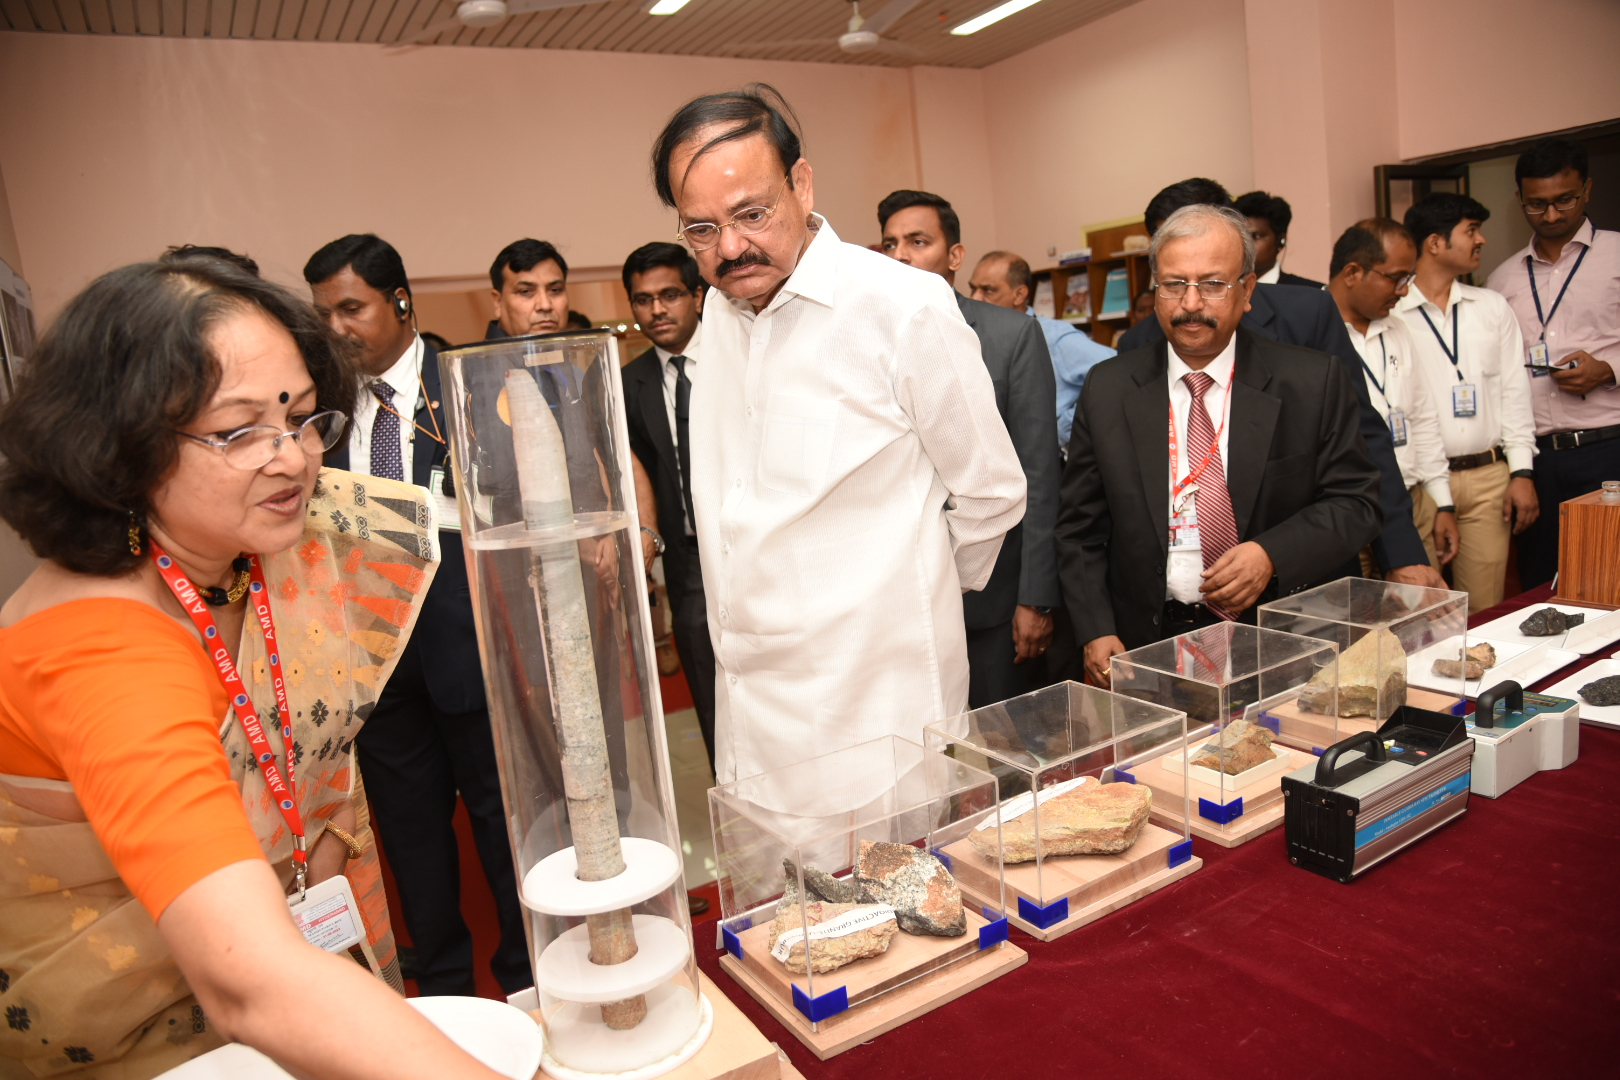 The Vice President, Shri M. Venkaiah Naidu going around the Exhibition on Atomic Minerals, at the Atomic Minerals Directorate for Exploration and Research, in Hyderabad on May 16, 2019.